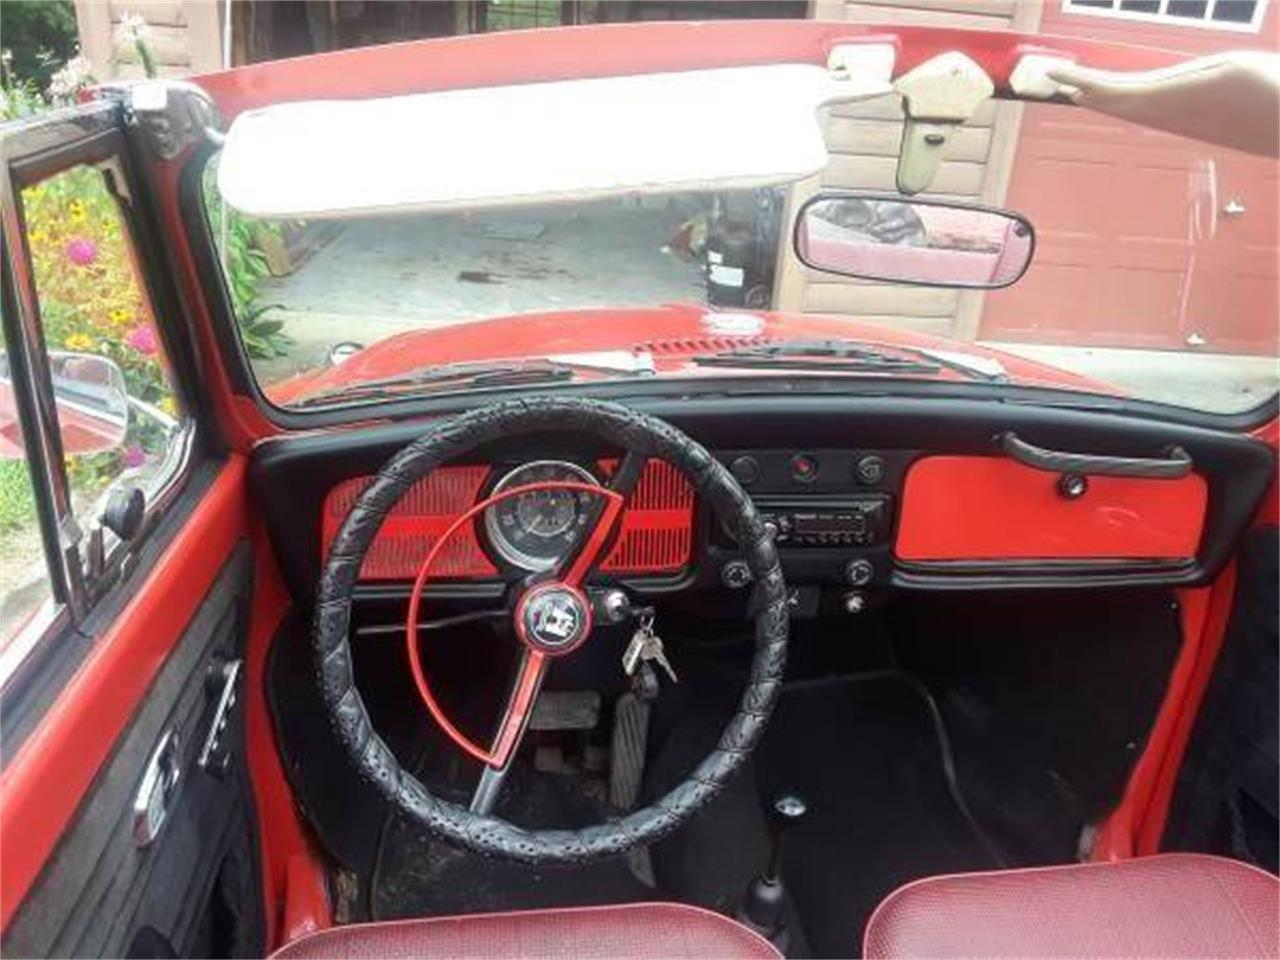 1968 Volkswagen Beetle for sale in Long Island, NY – photo 3